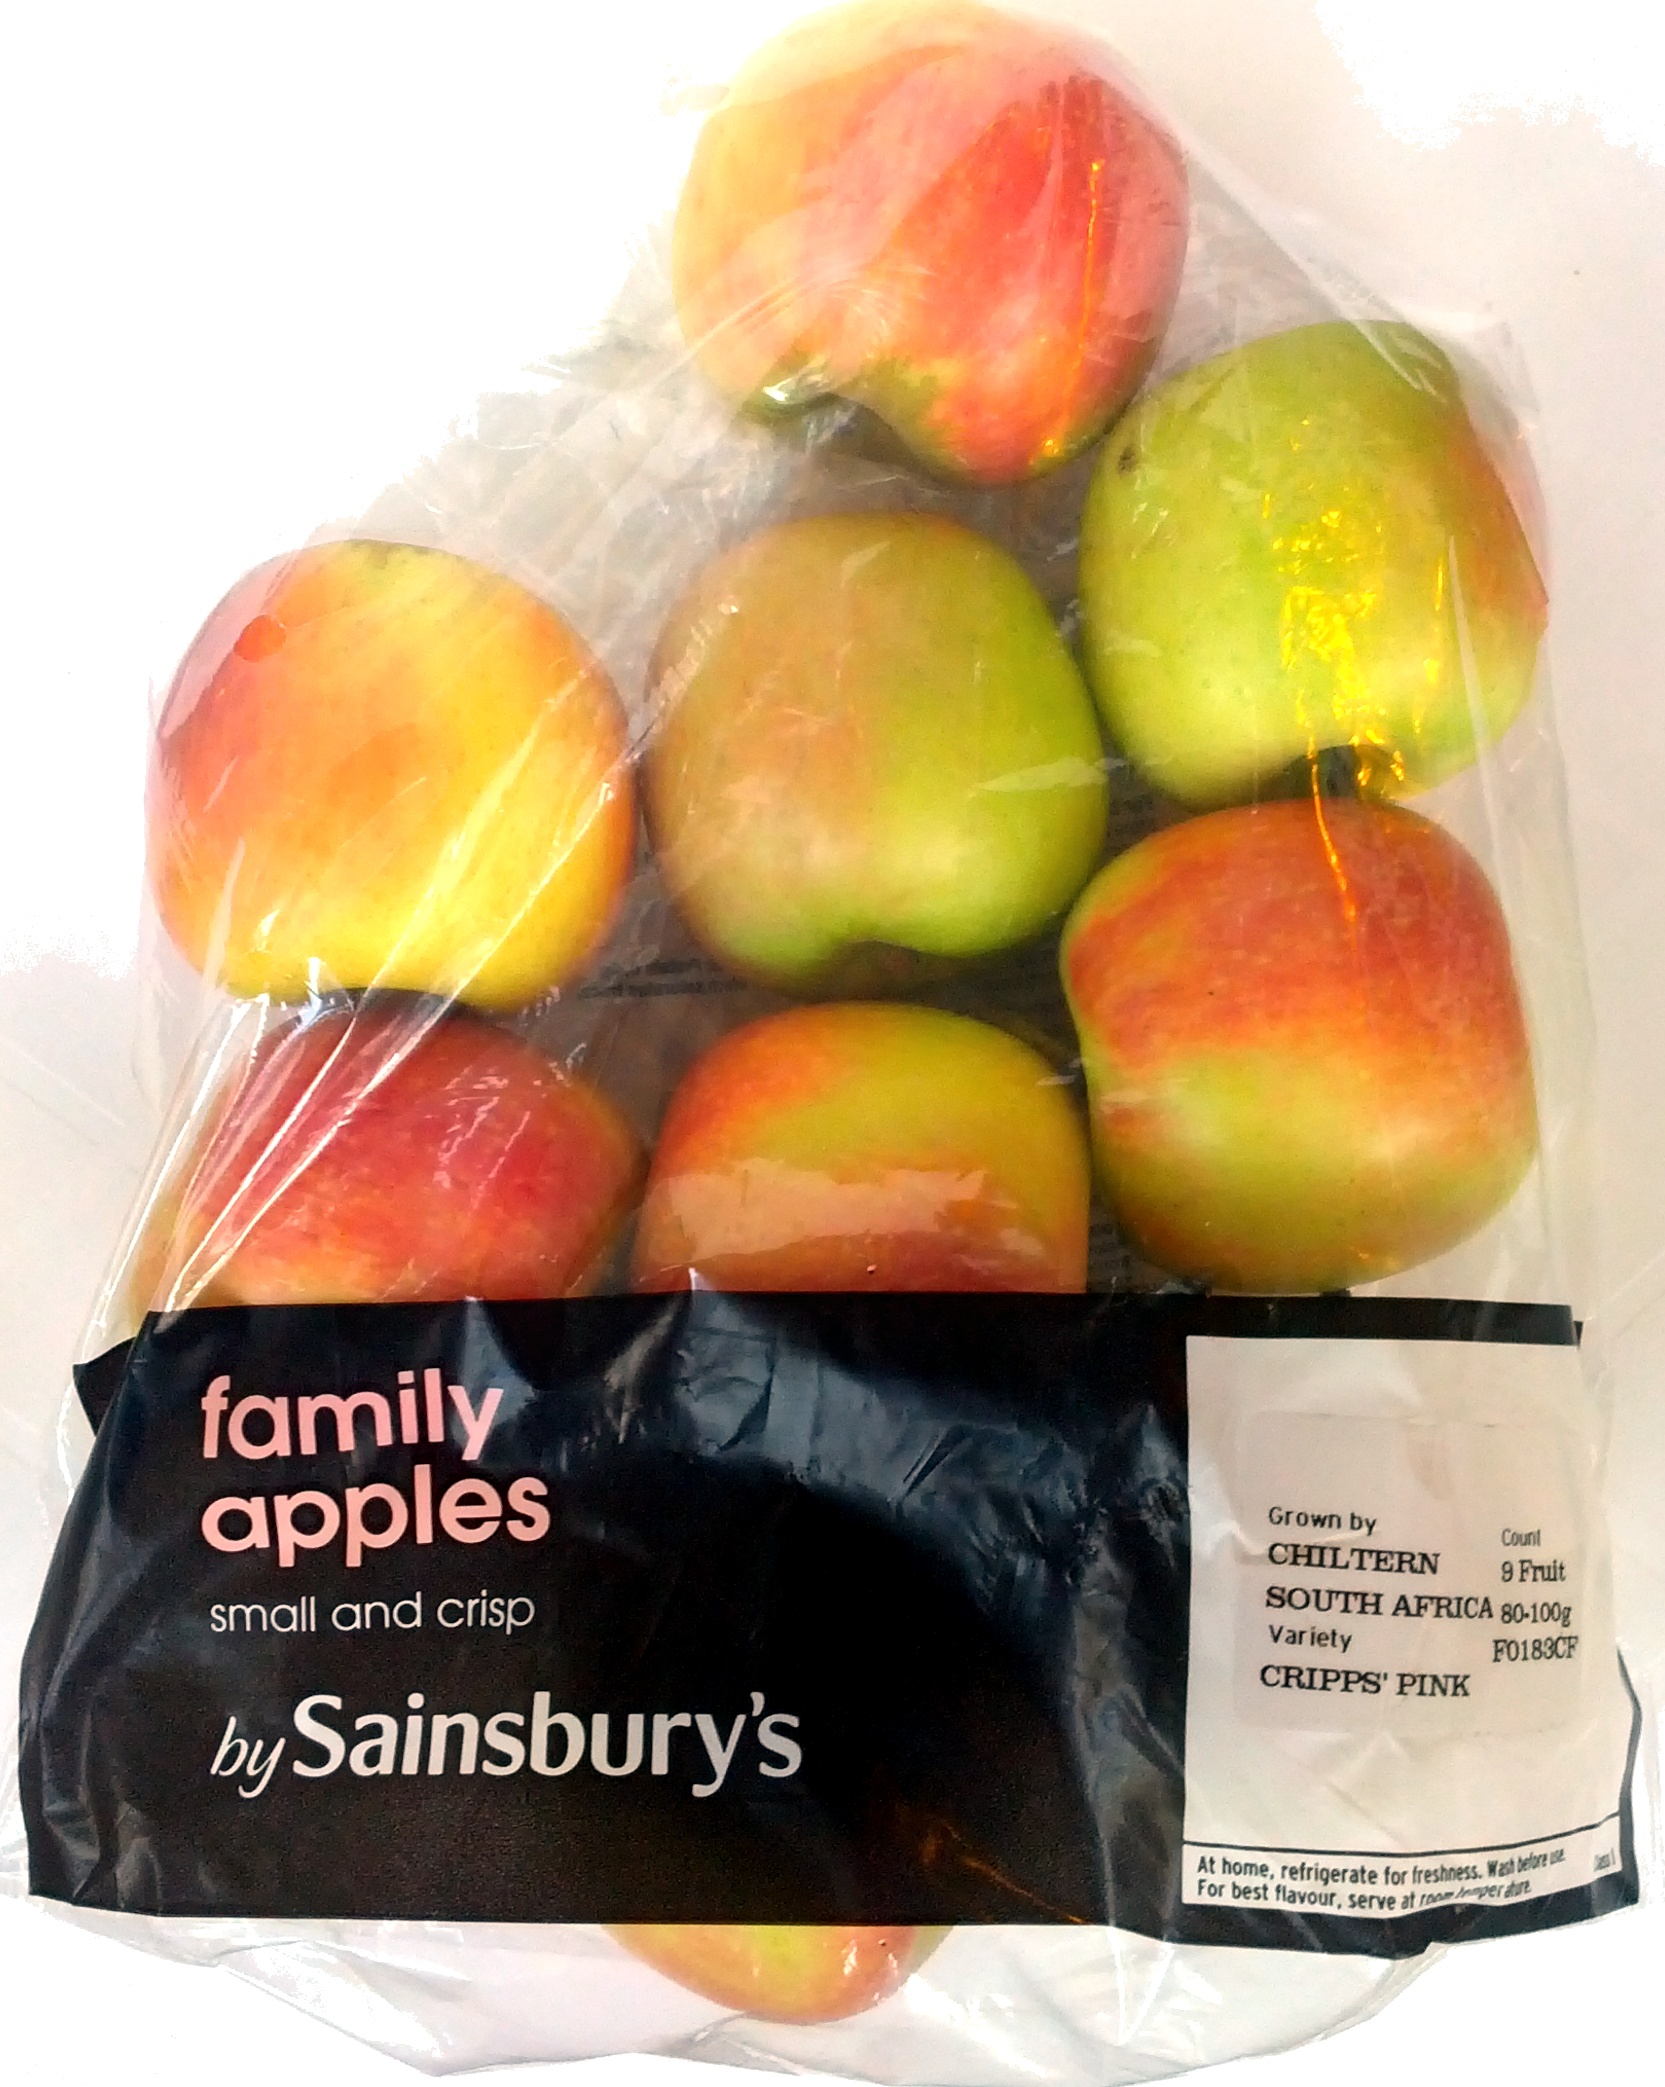 Family apples - Product